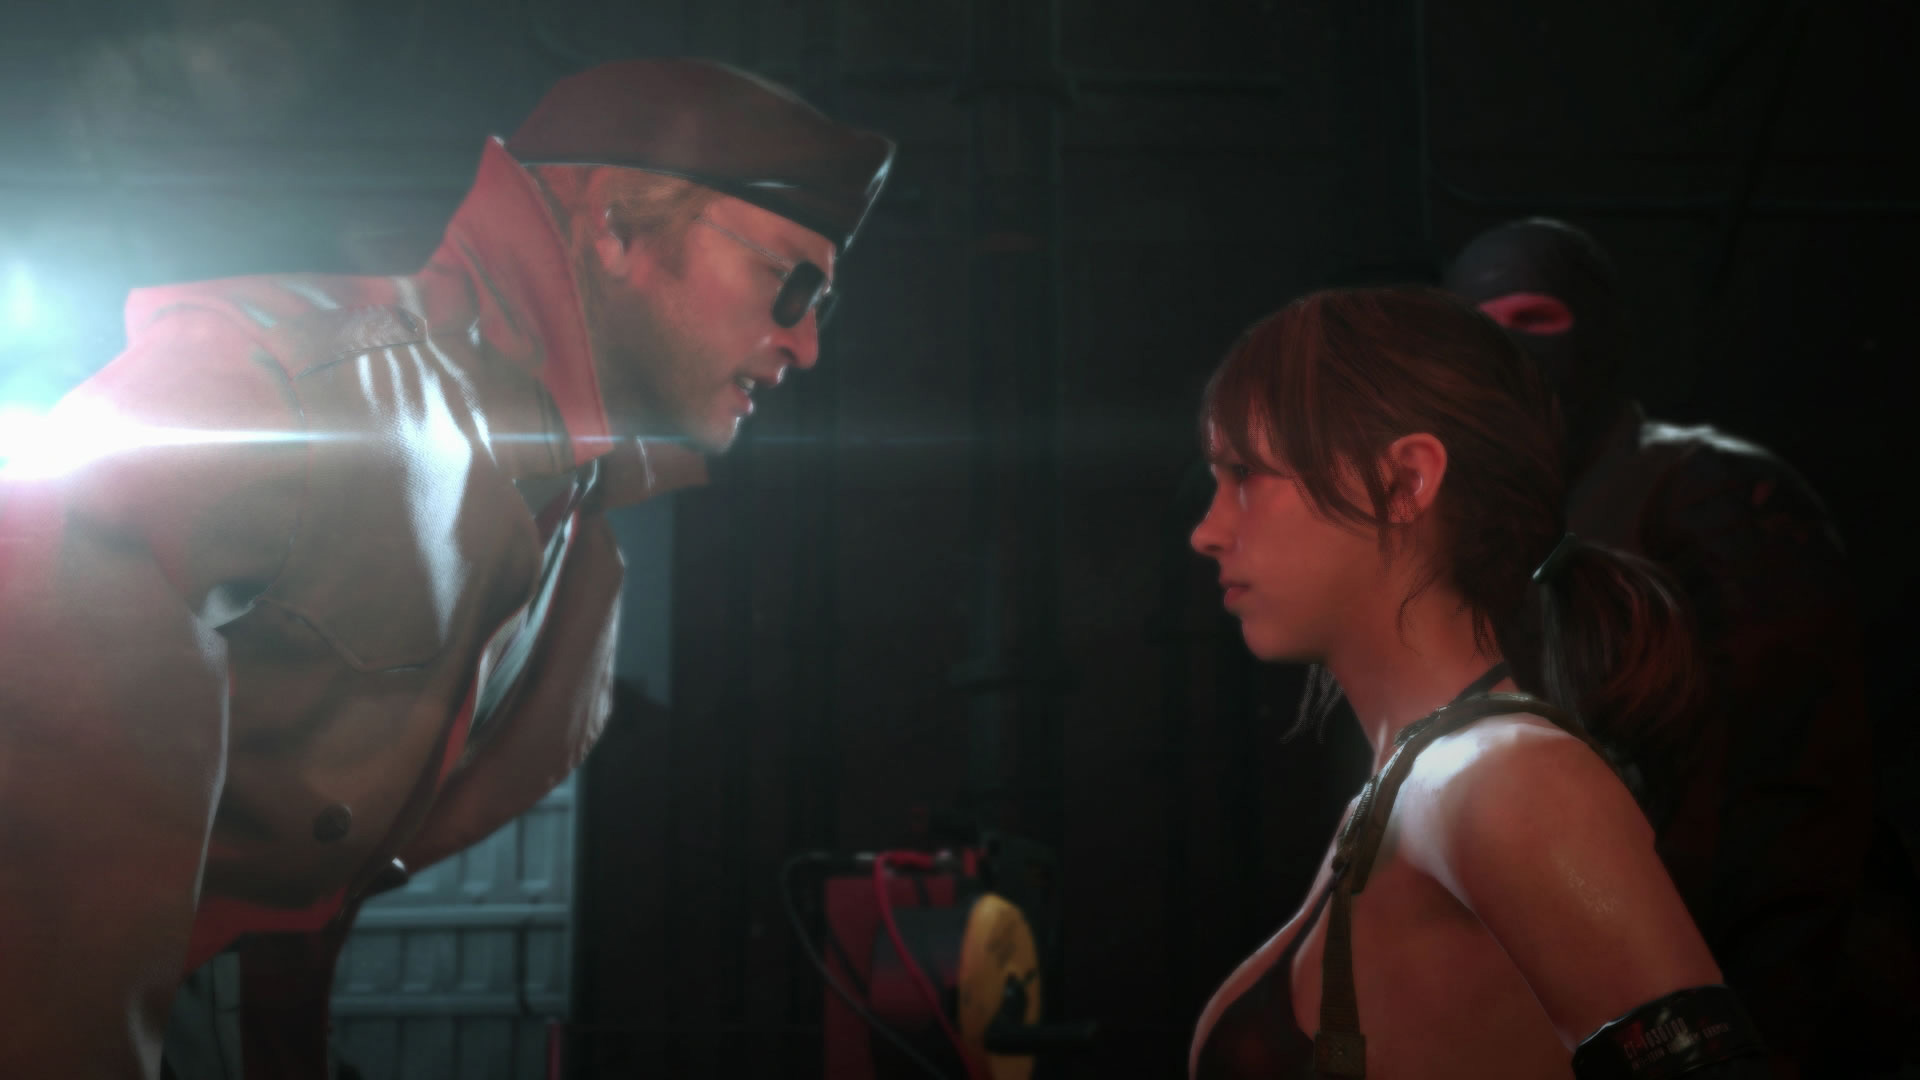 Metal-Gear-Solid-V-The-Phantom-Pain-E3-2015-Screen-Kaz-and-Quiet